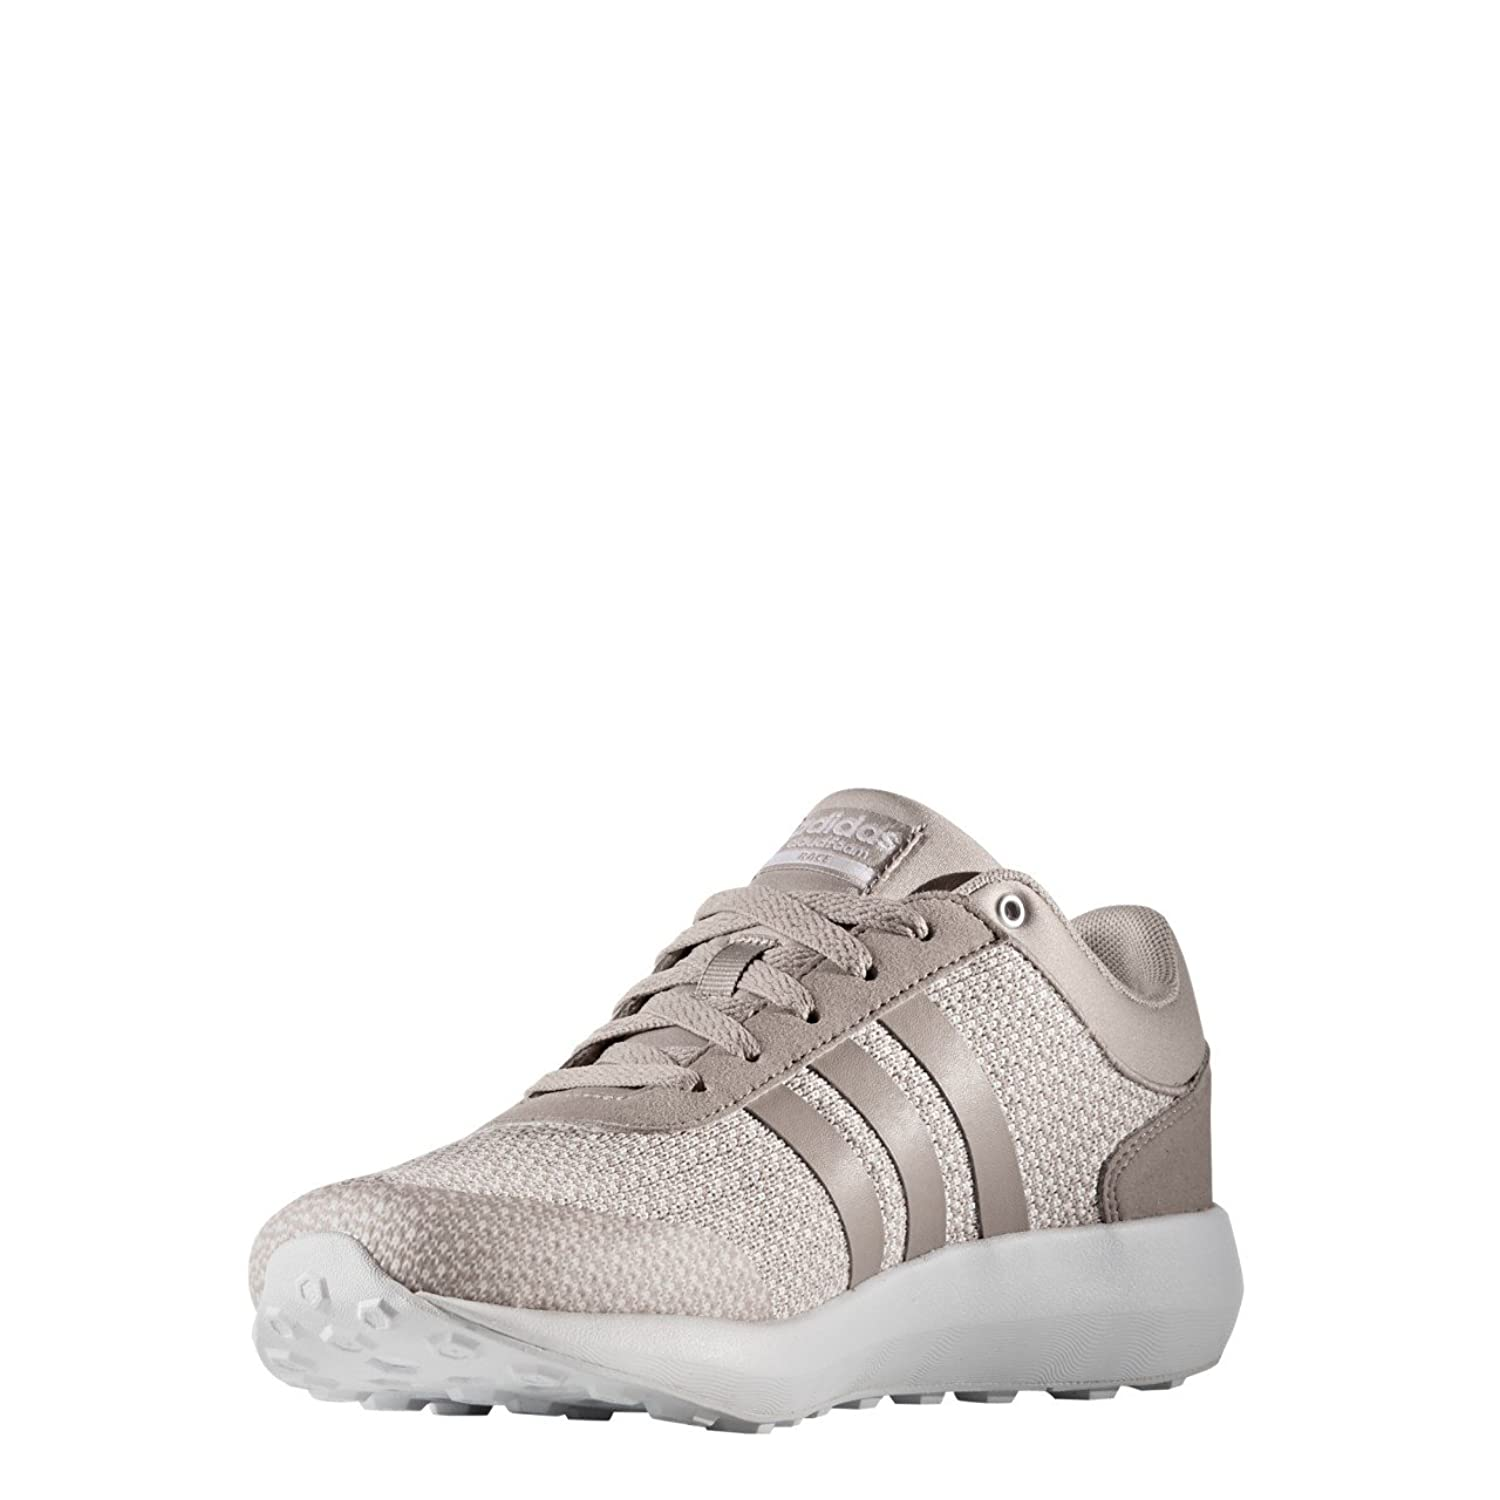 size 40 a5ad2 5d4e7 DEPORTIVA MUJER ADIDAS NEO - CLOUDFOAM RACE AW3842 BEIG bueno